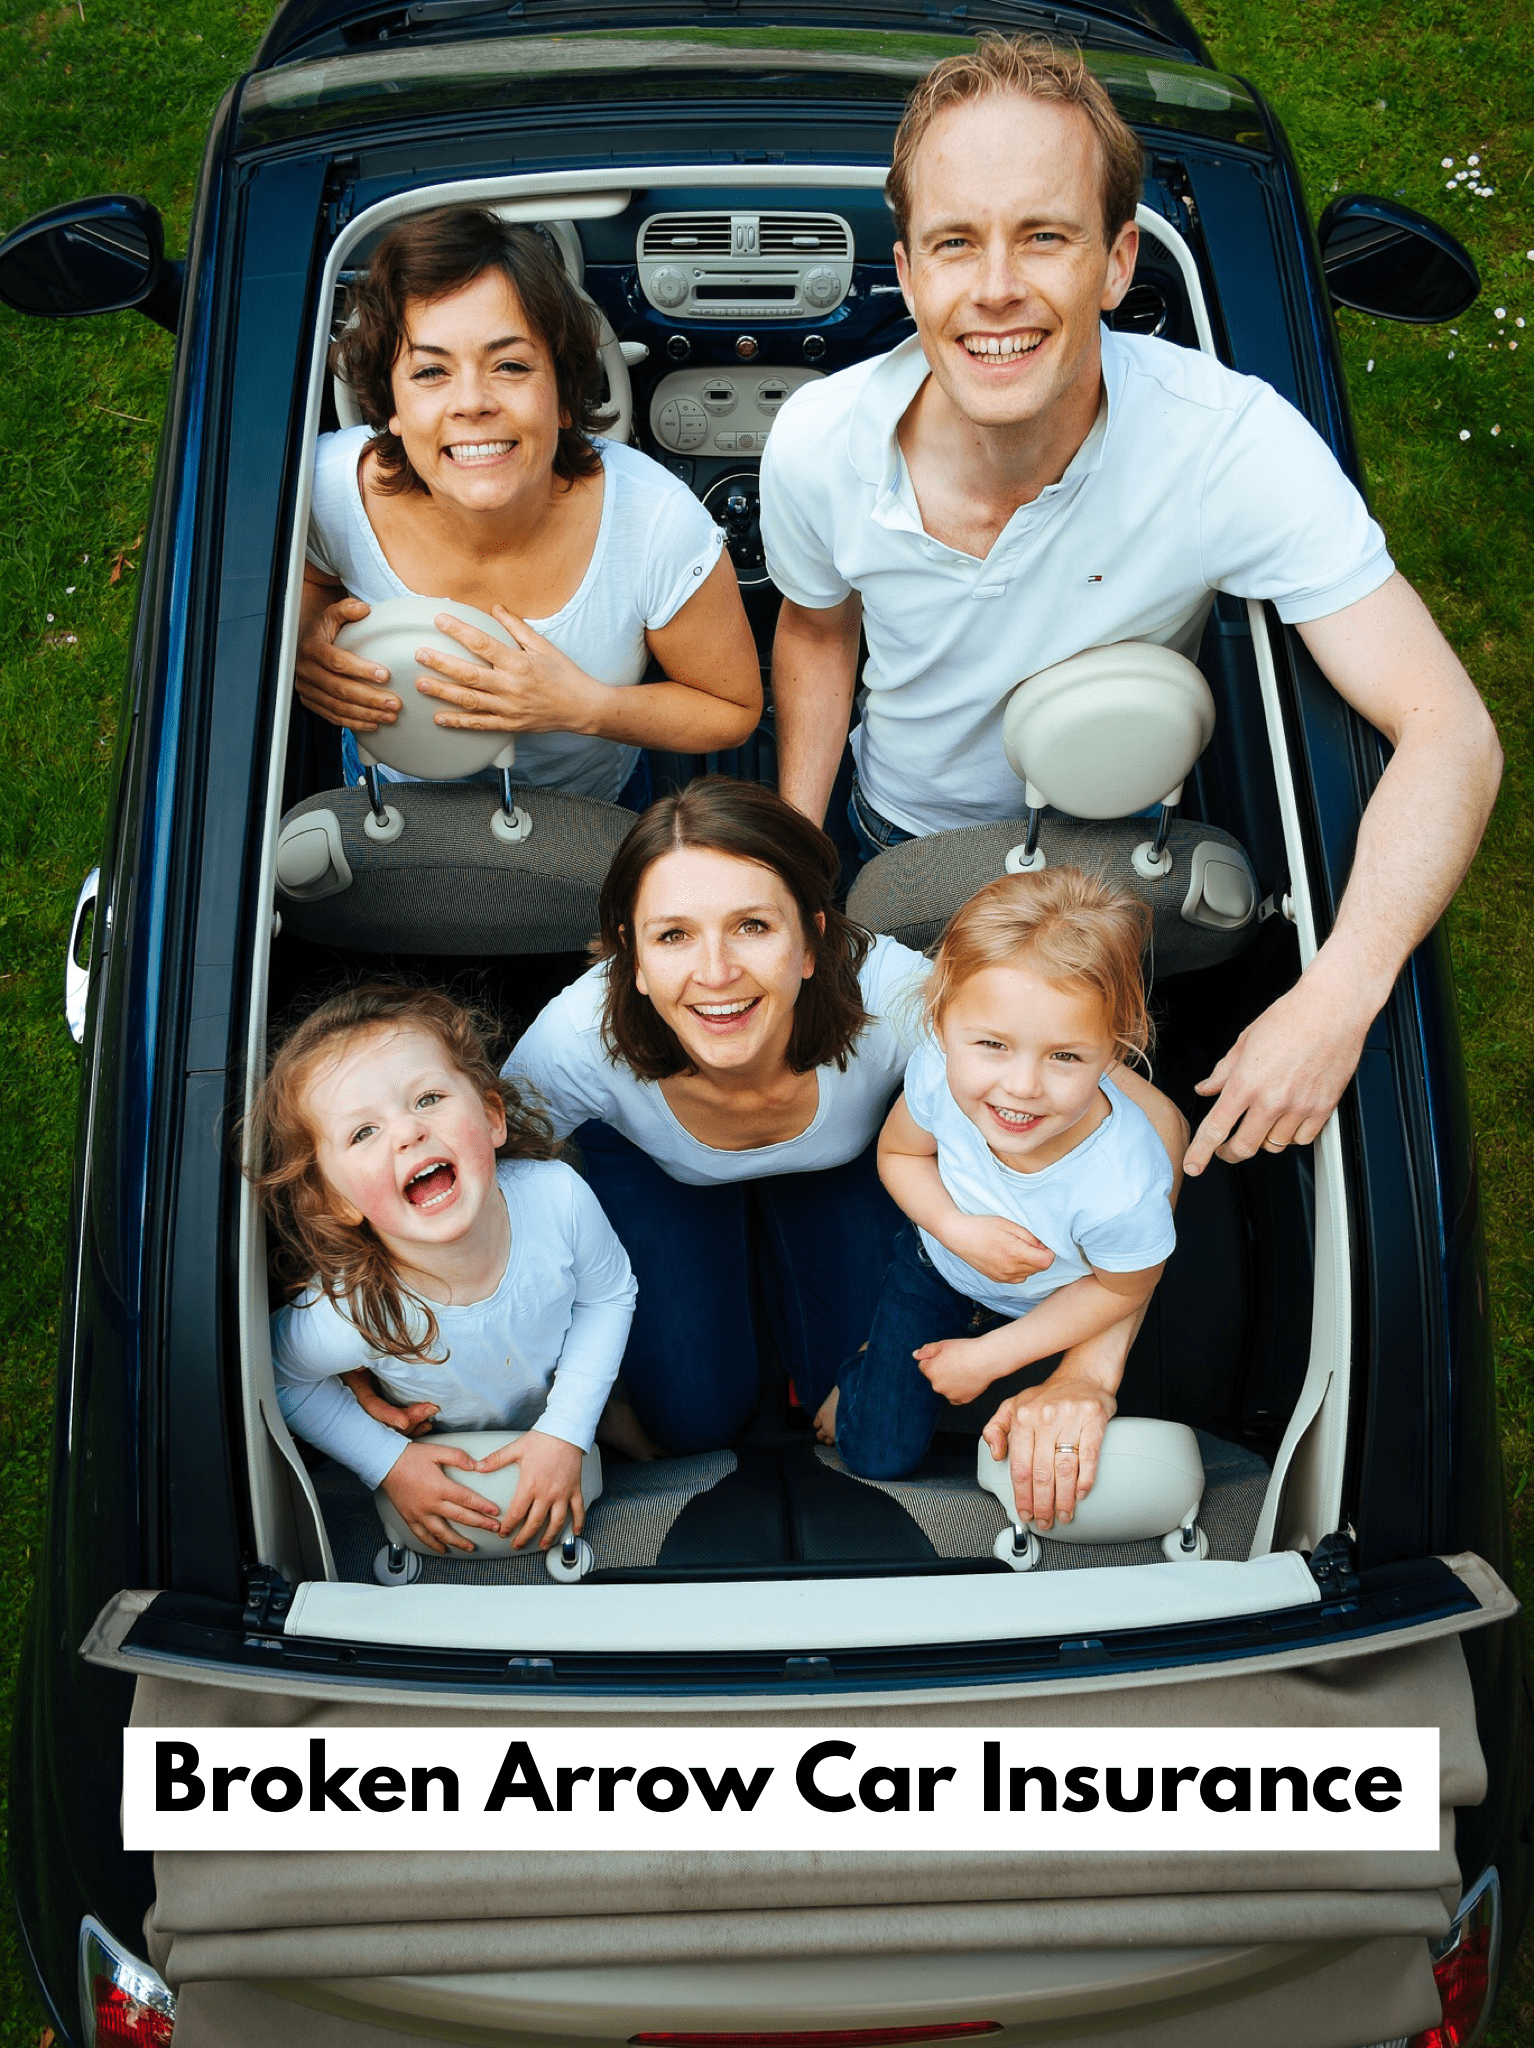 Broken Arrow Car insurance quotes for free